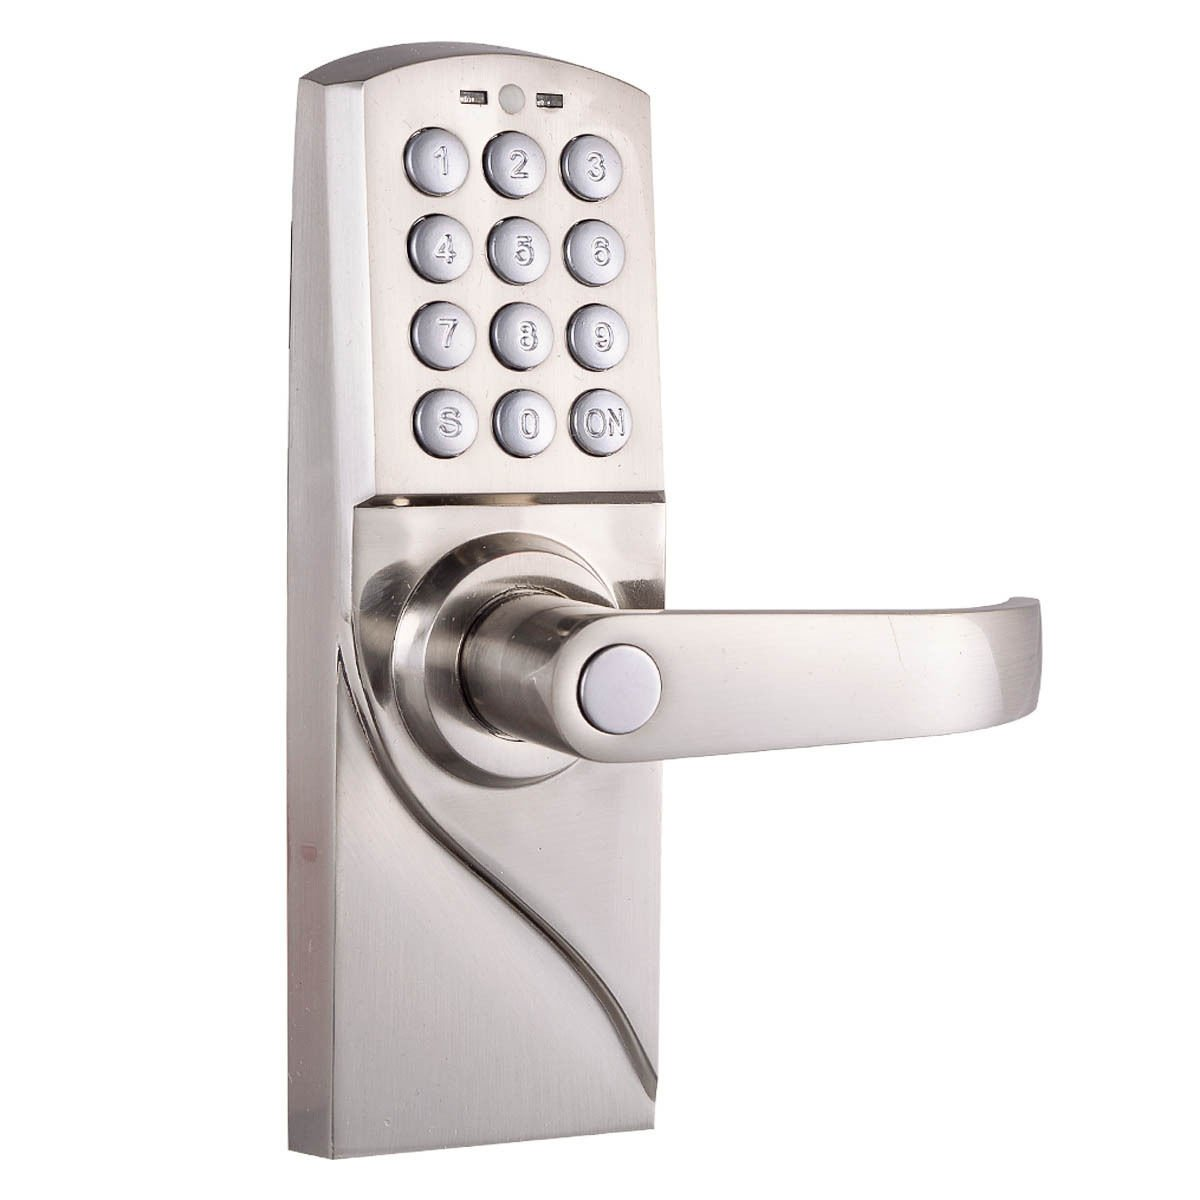 Amazon.com : Digital Electronic/Code Keyless Keypad Security Entry ...